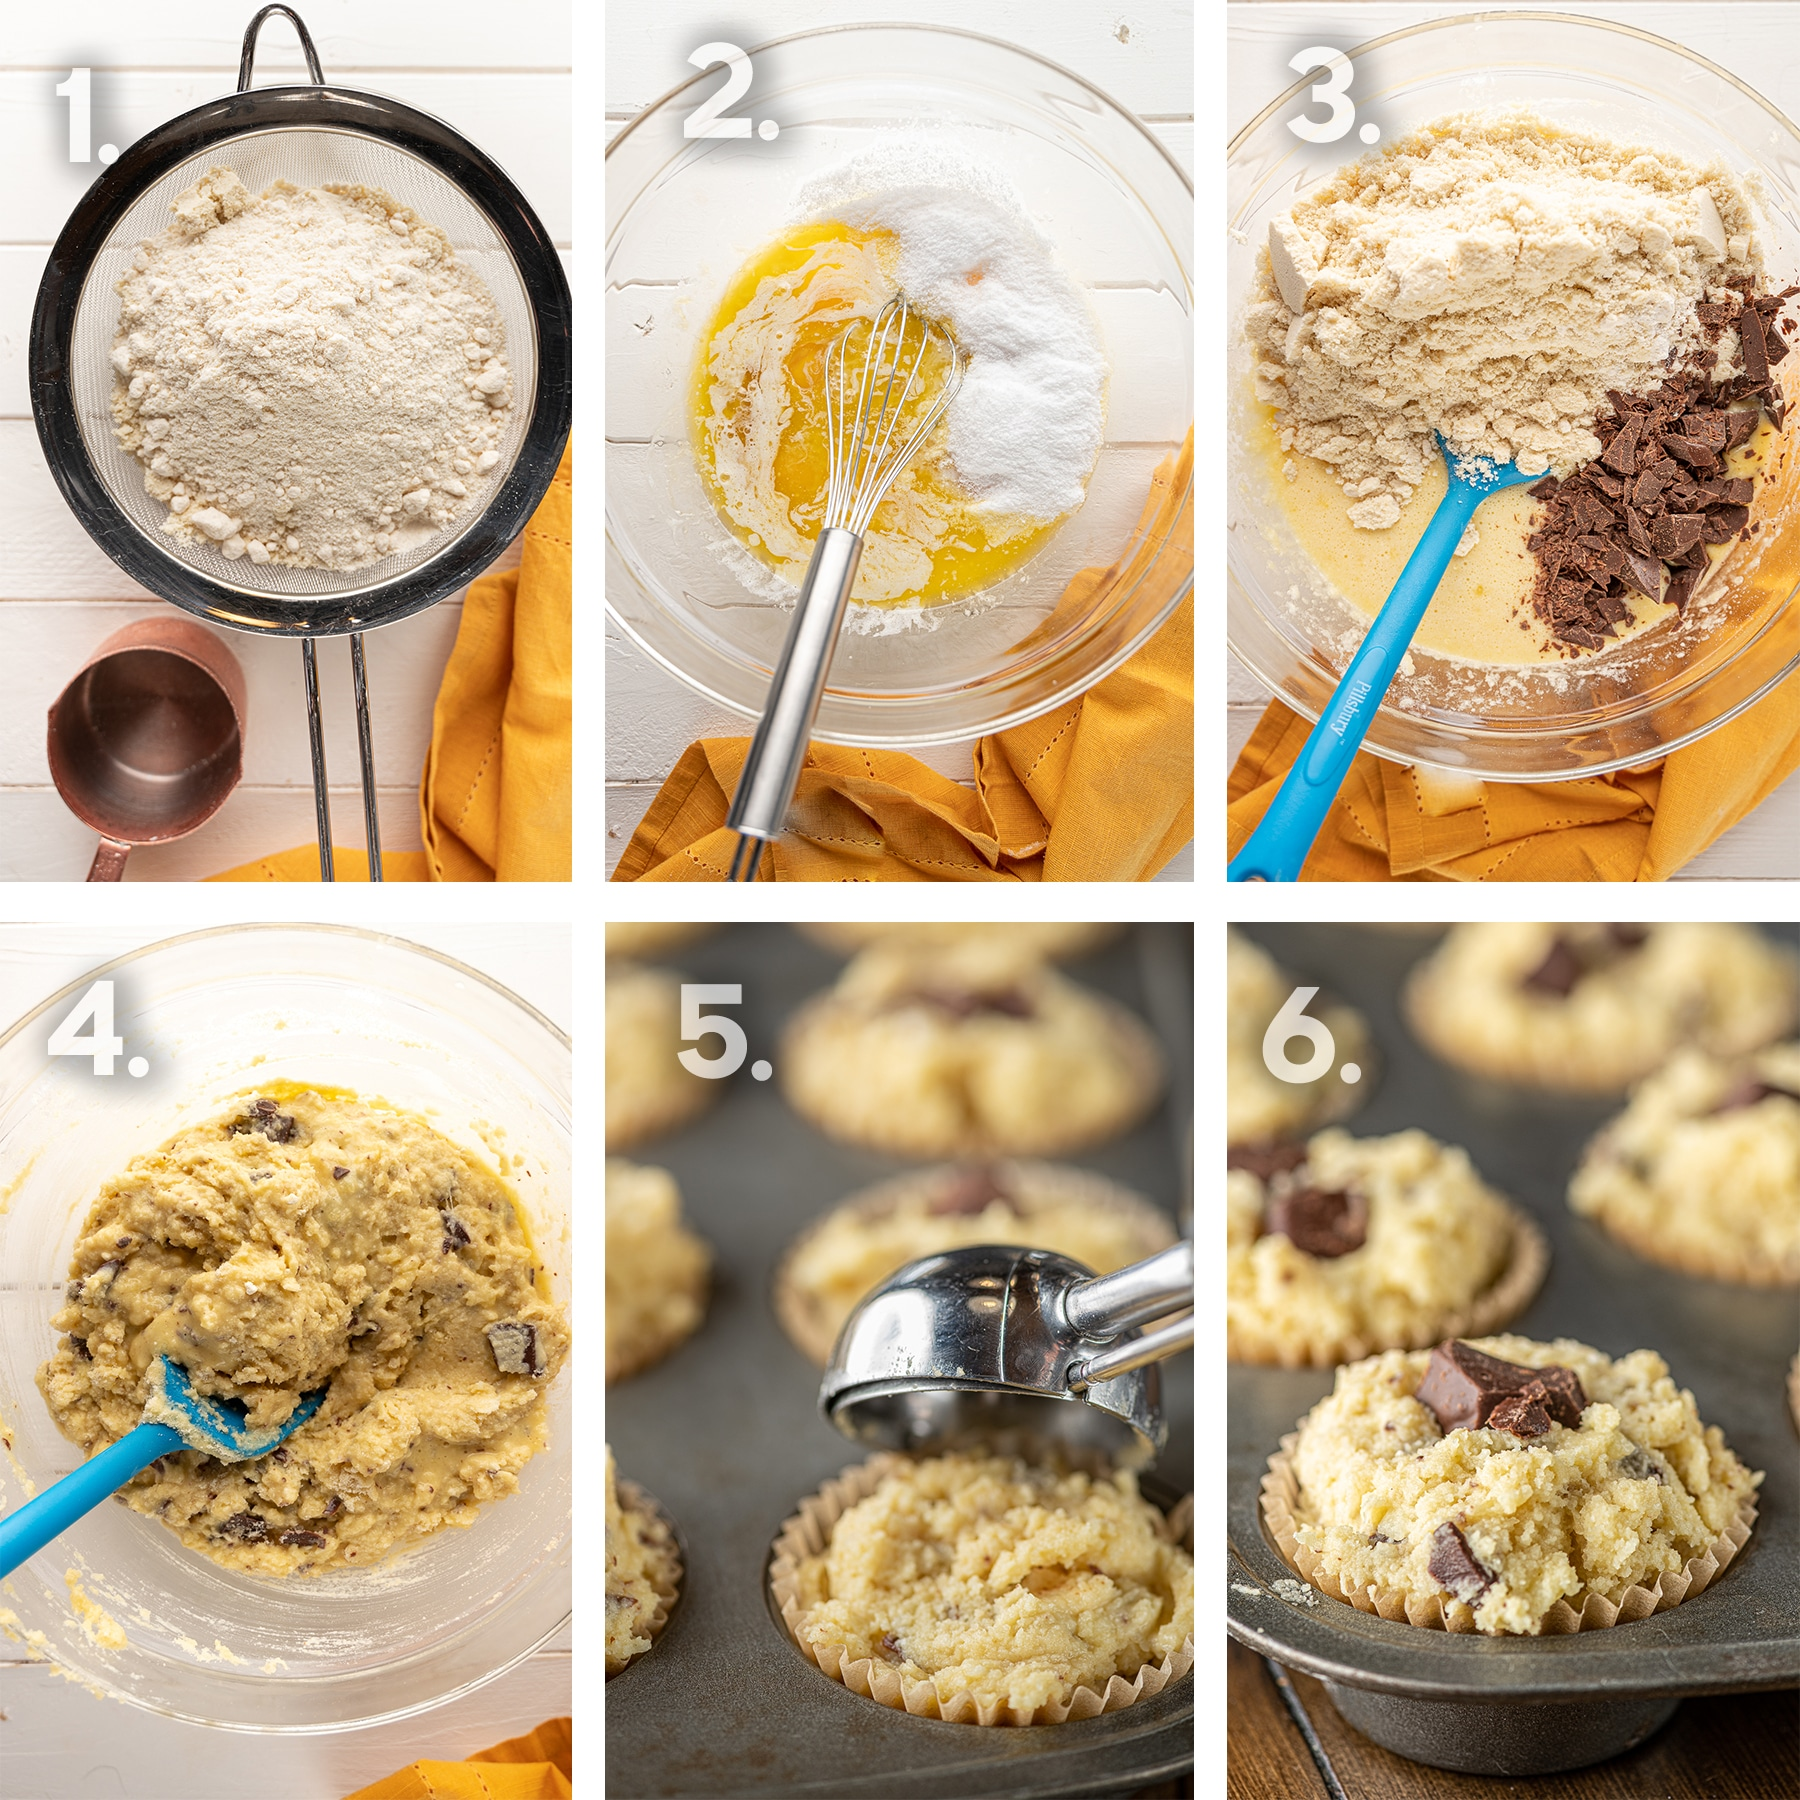 A six-panel step by step process of making low carb banana muffins.